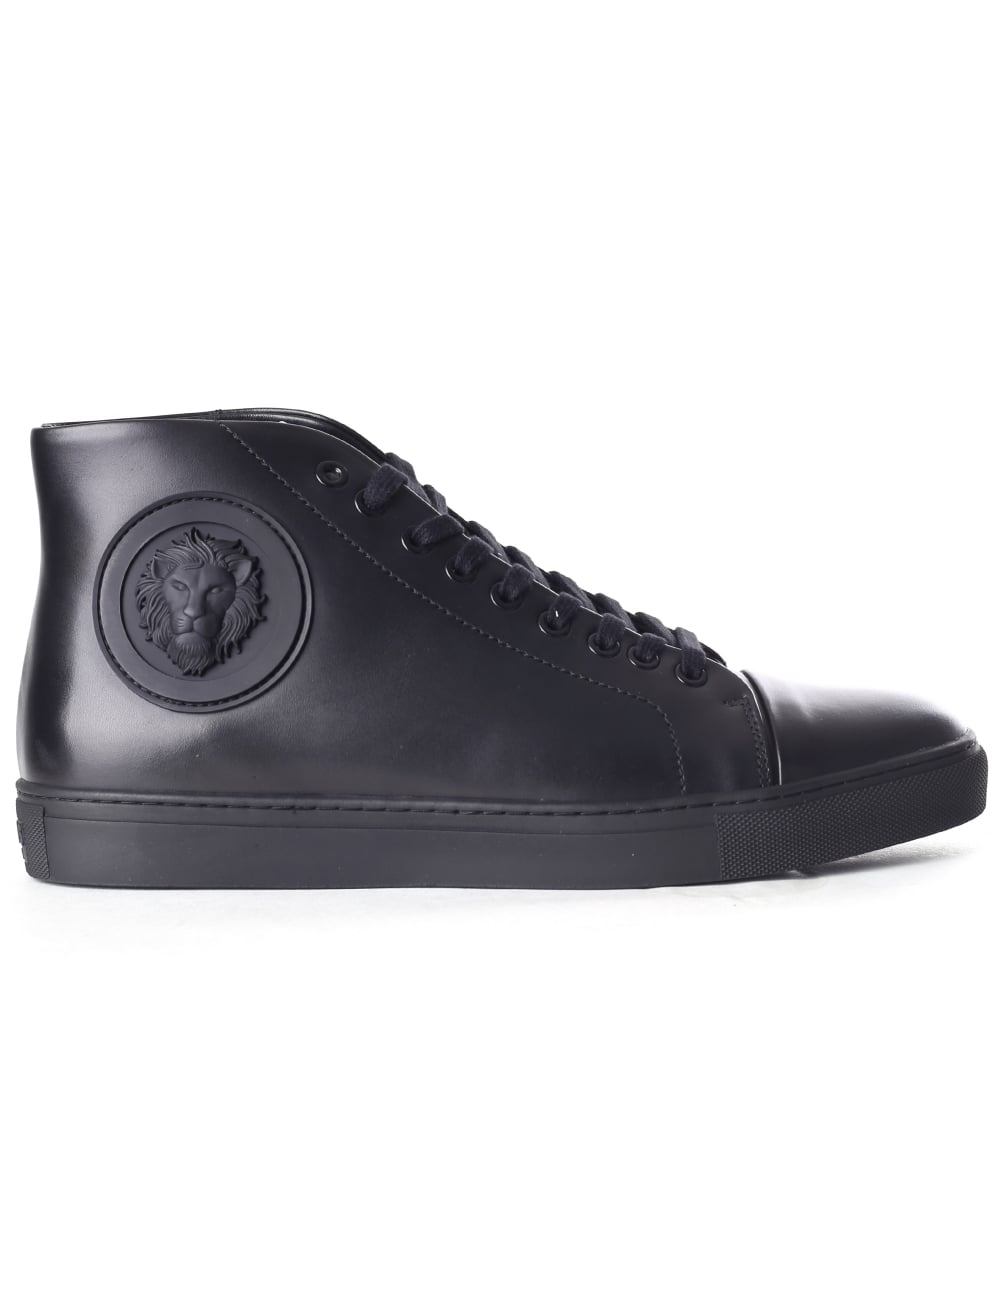 Versus Versace Men's Scarpa Sport Lion Head Hi Top Trainer